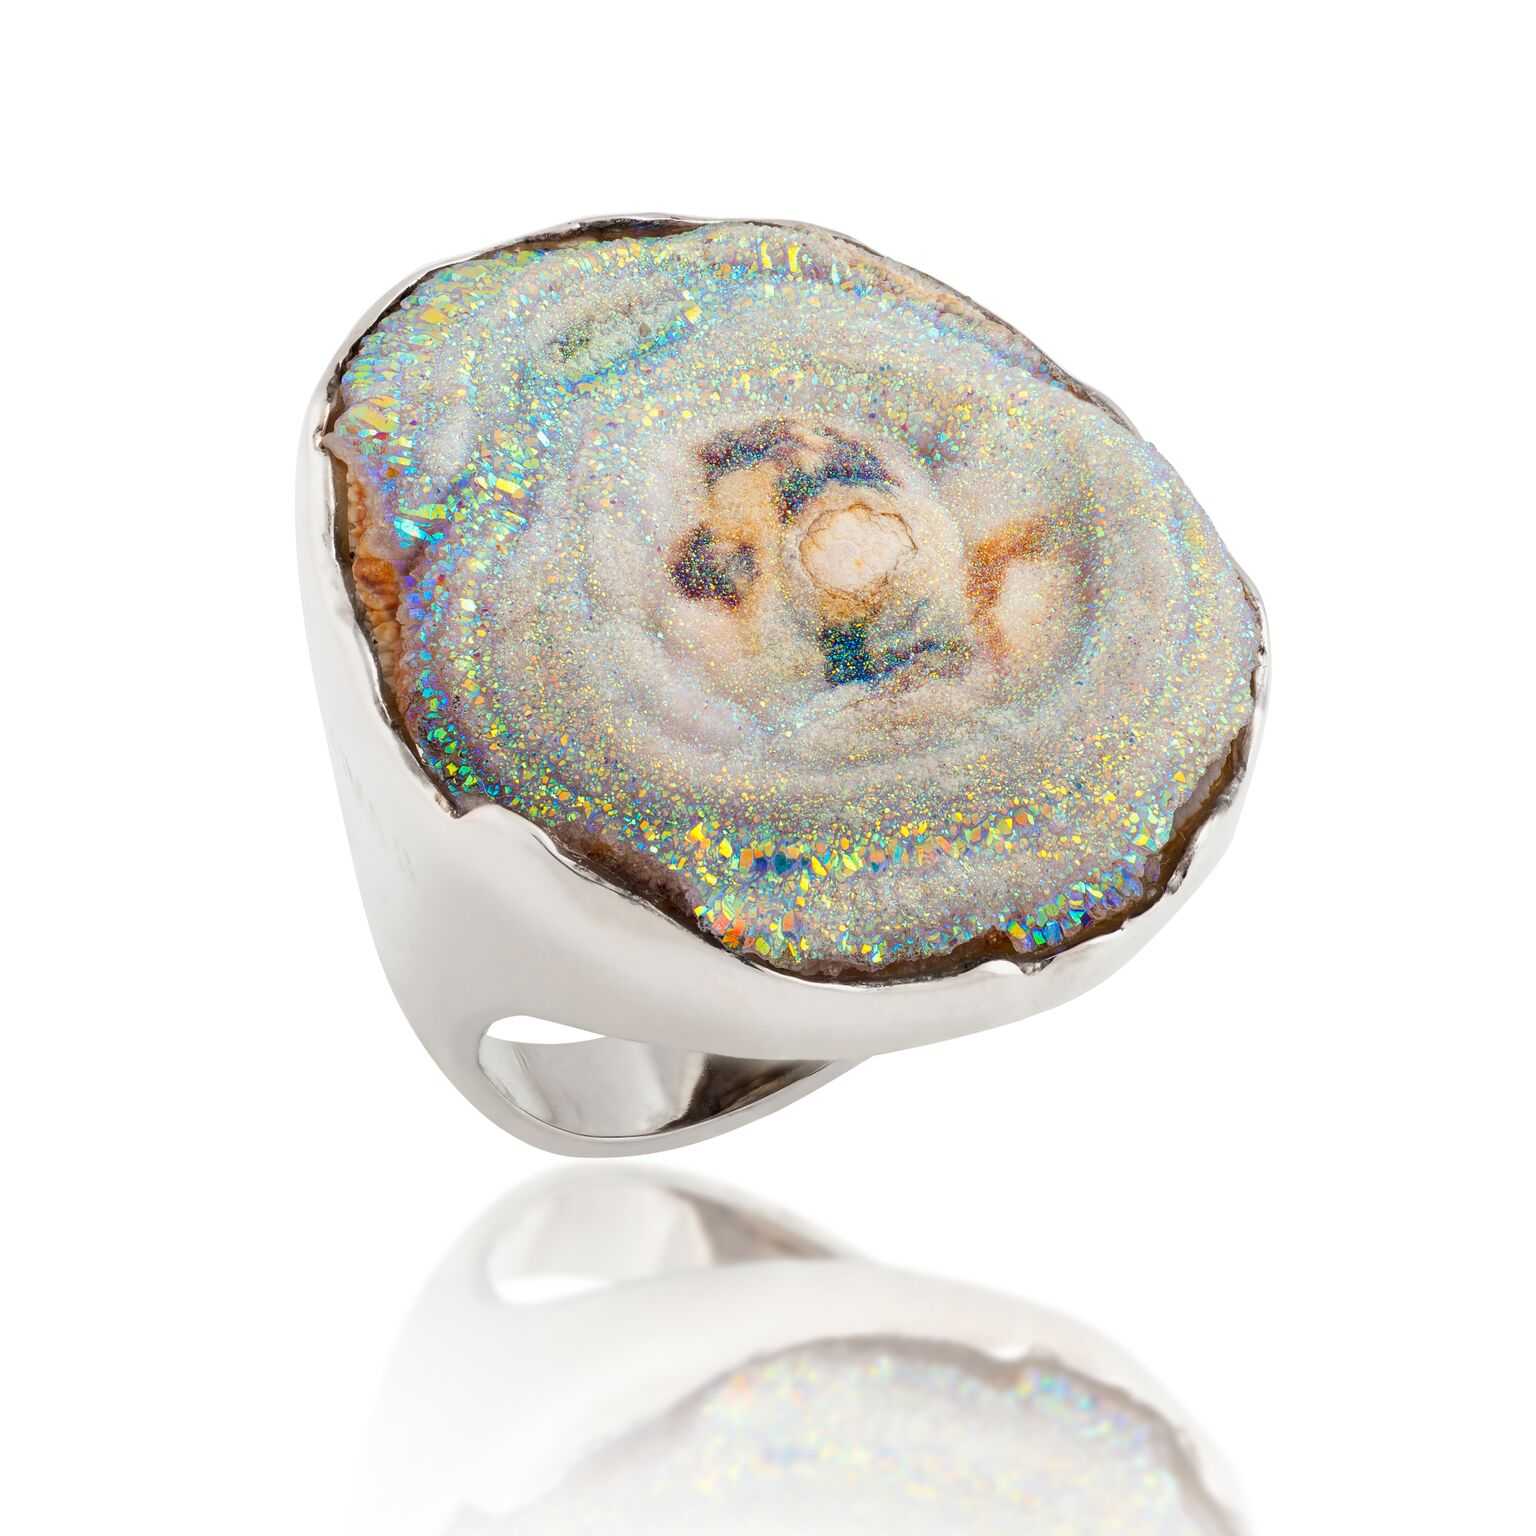 Druzy quartz, set in white gold-plated silver ring